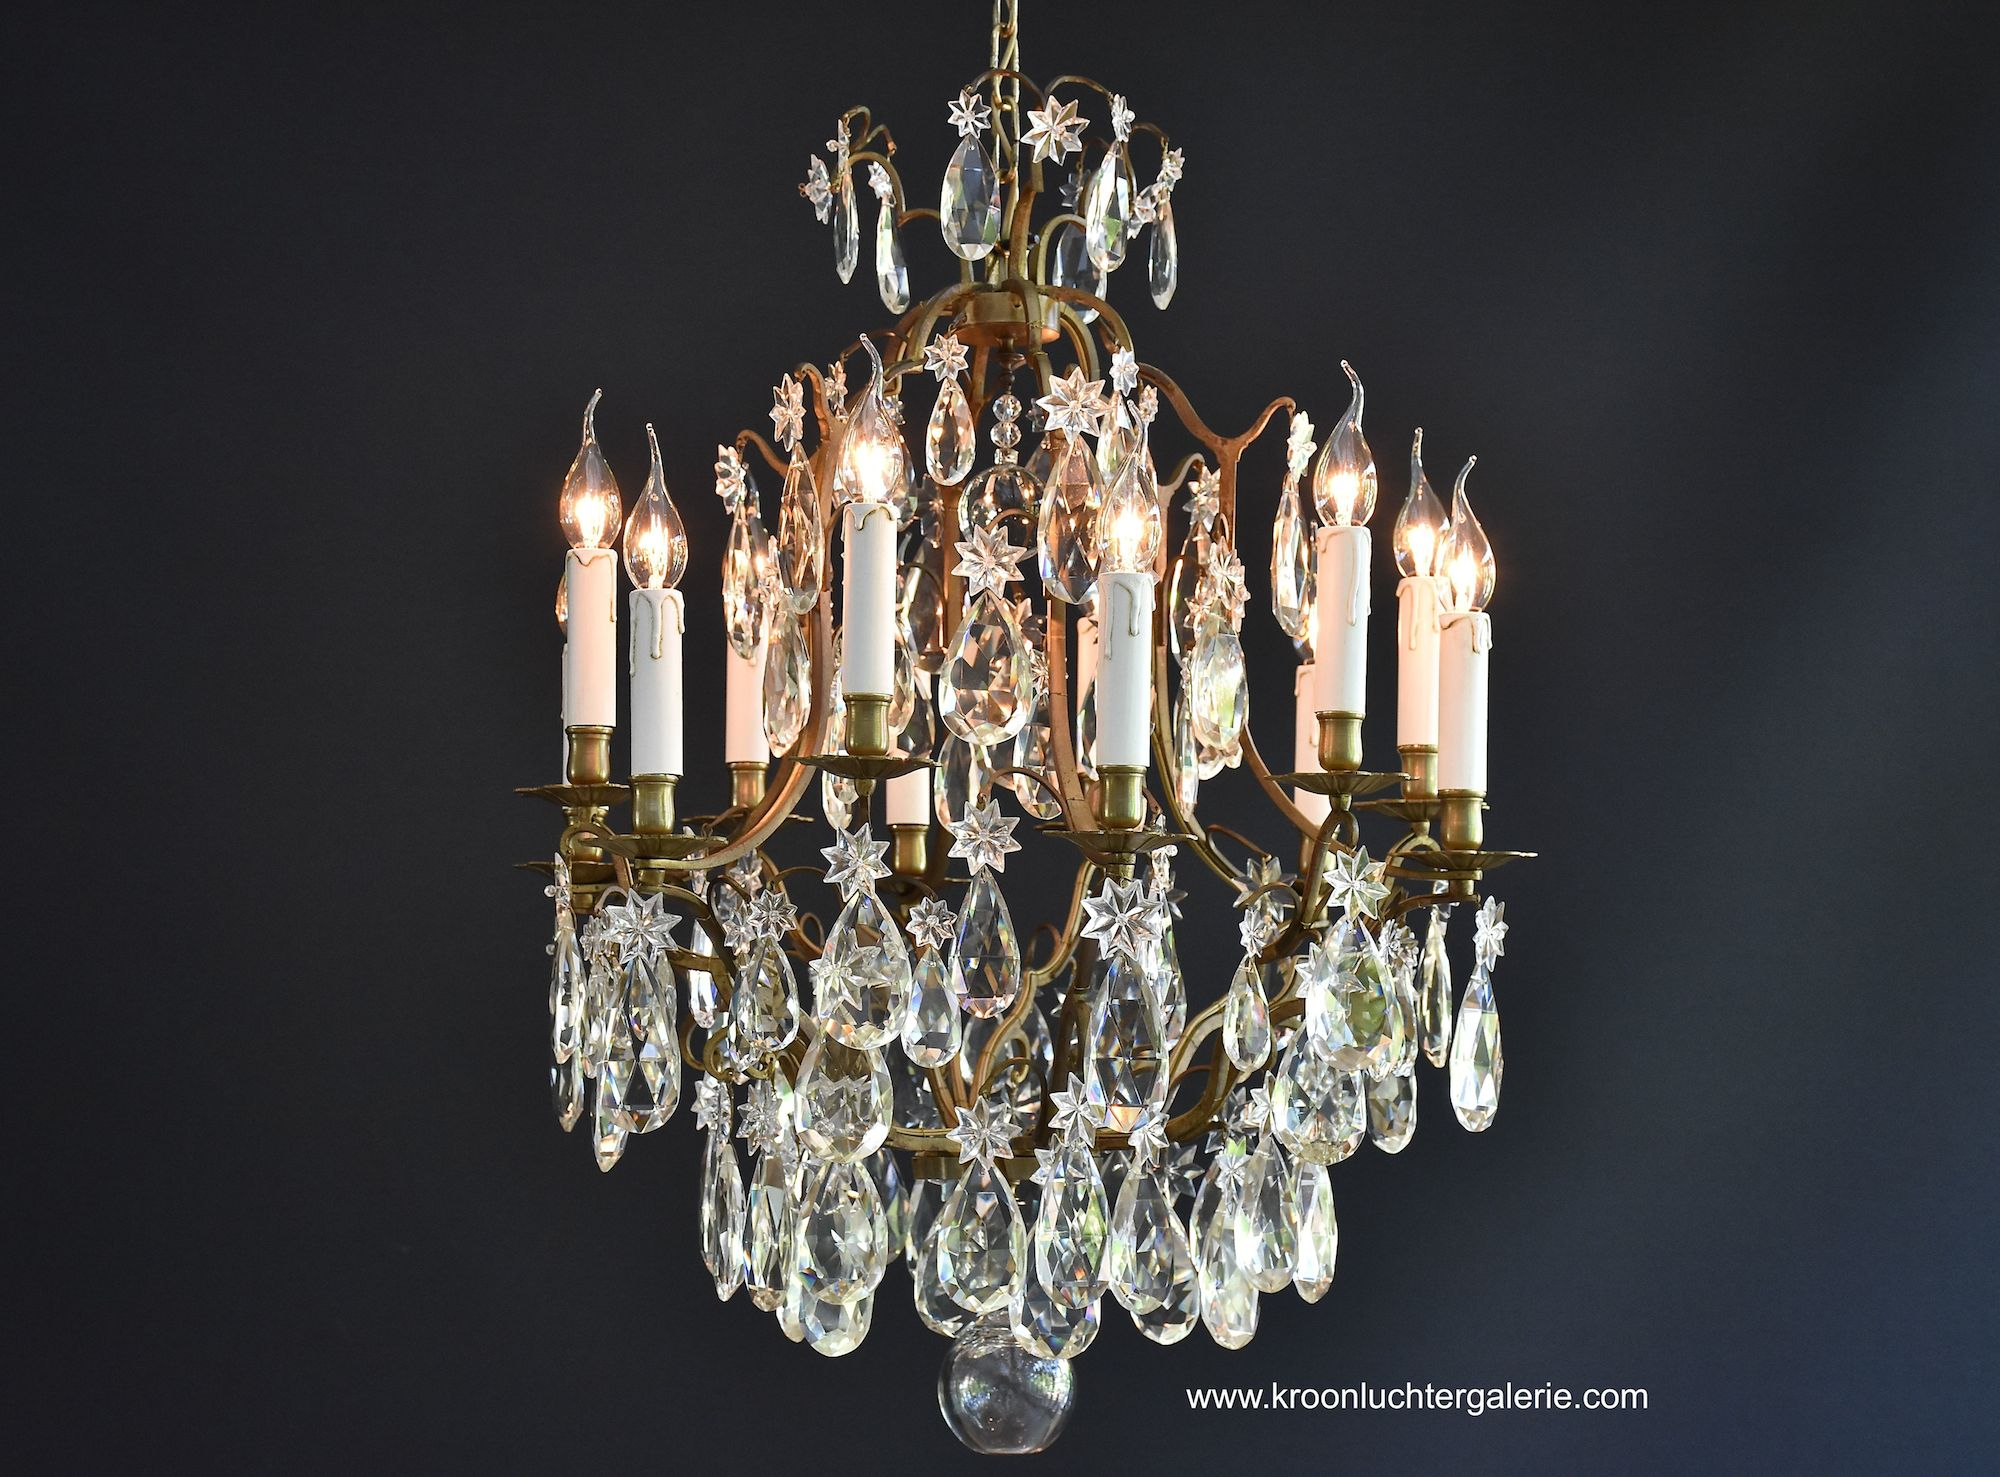 French chandelier with 12 Light